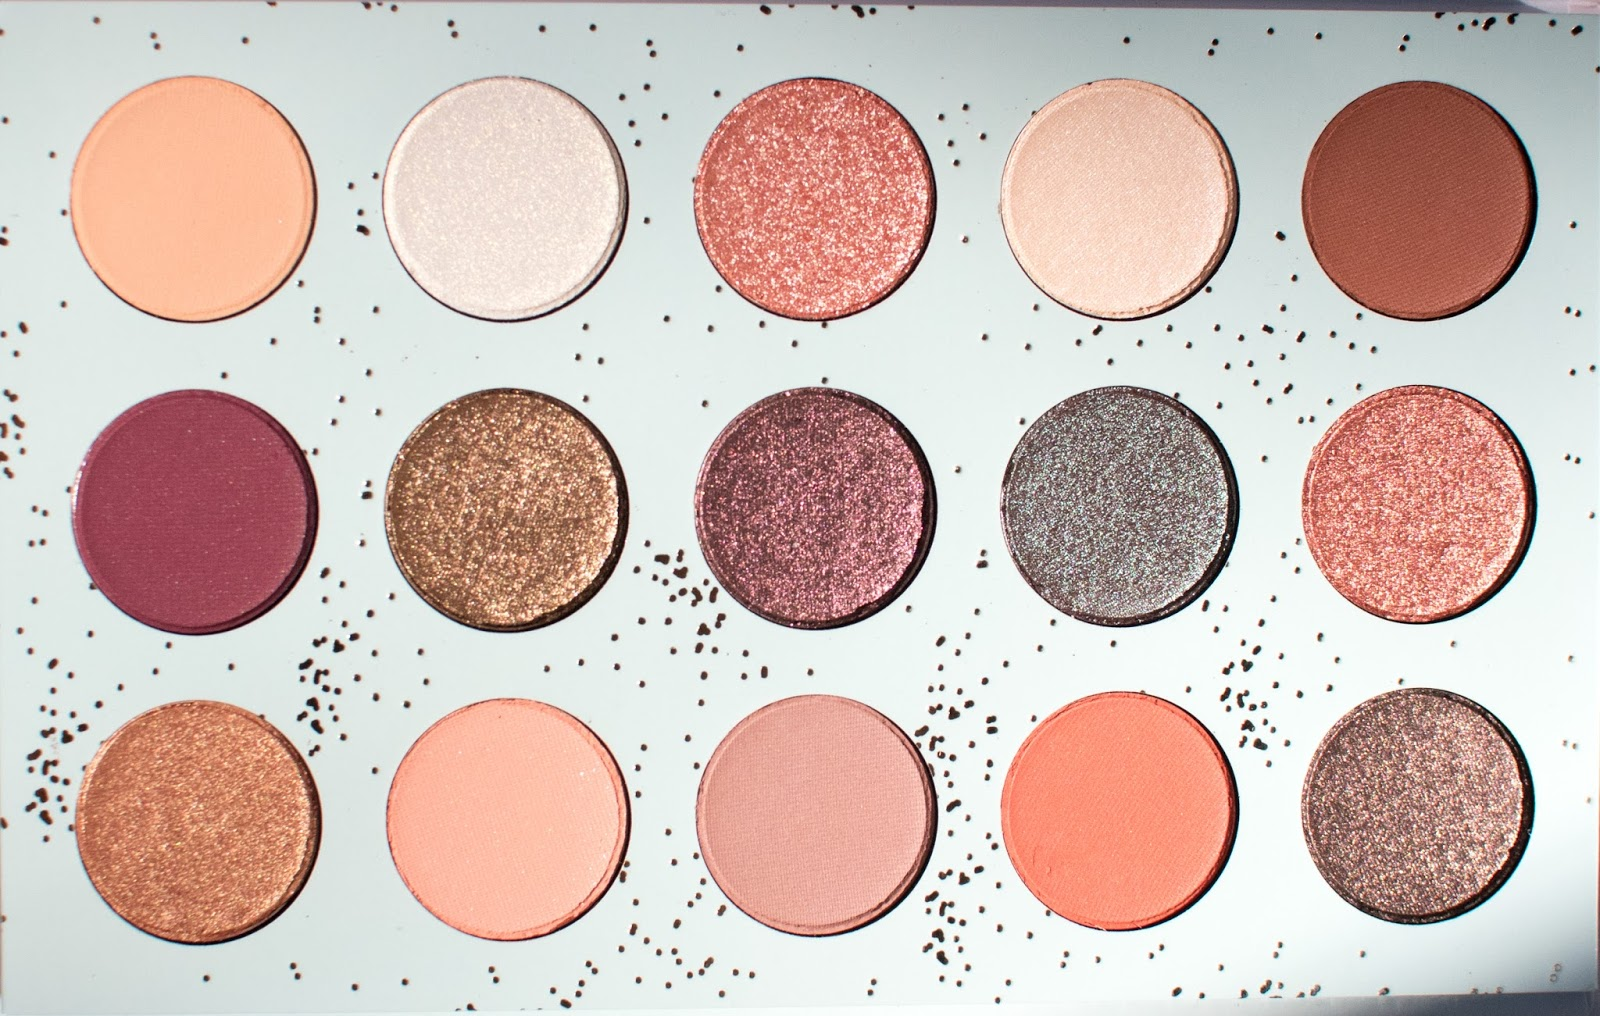 Colourpop All I See is Magic Pressed Powder Shadow Palette Colors